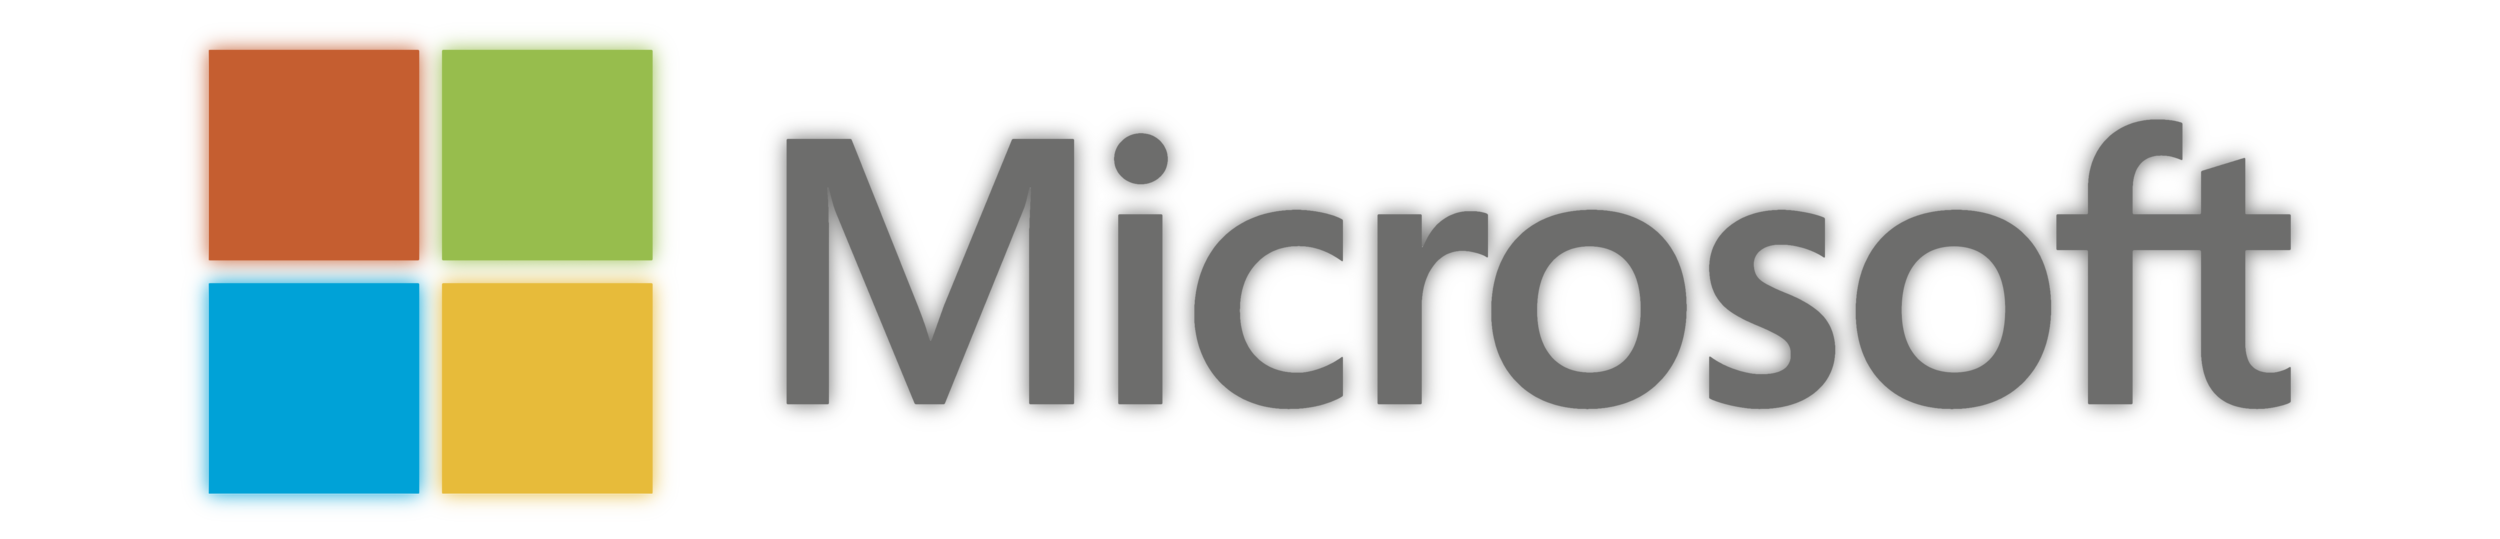 MSFT logo LARGE PNG.png